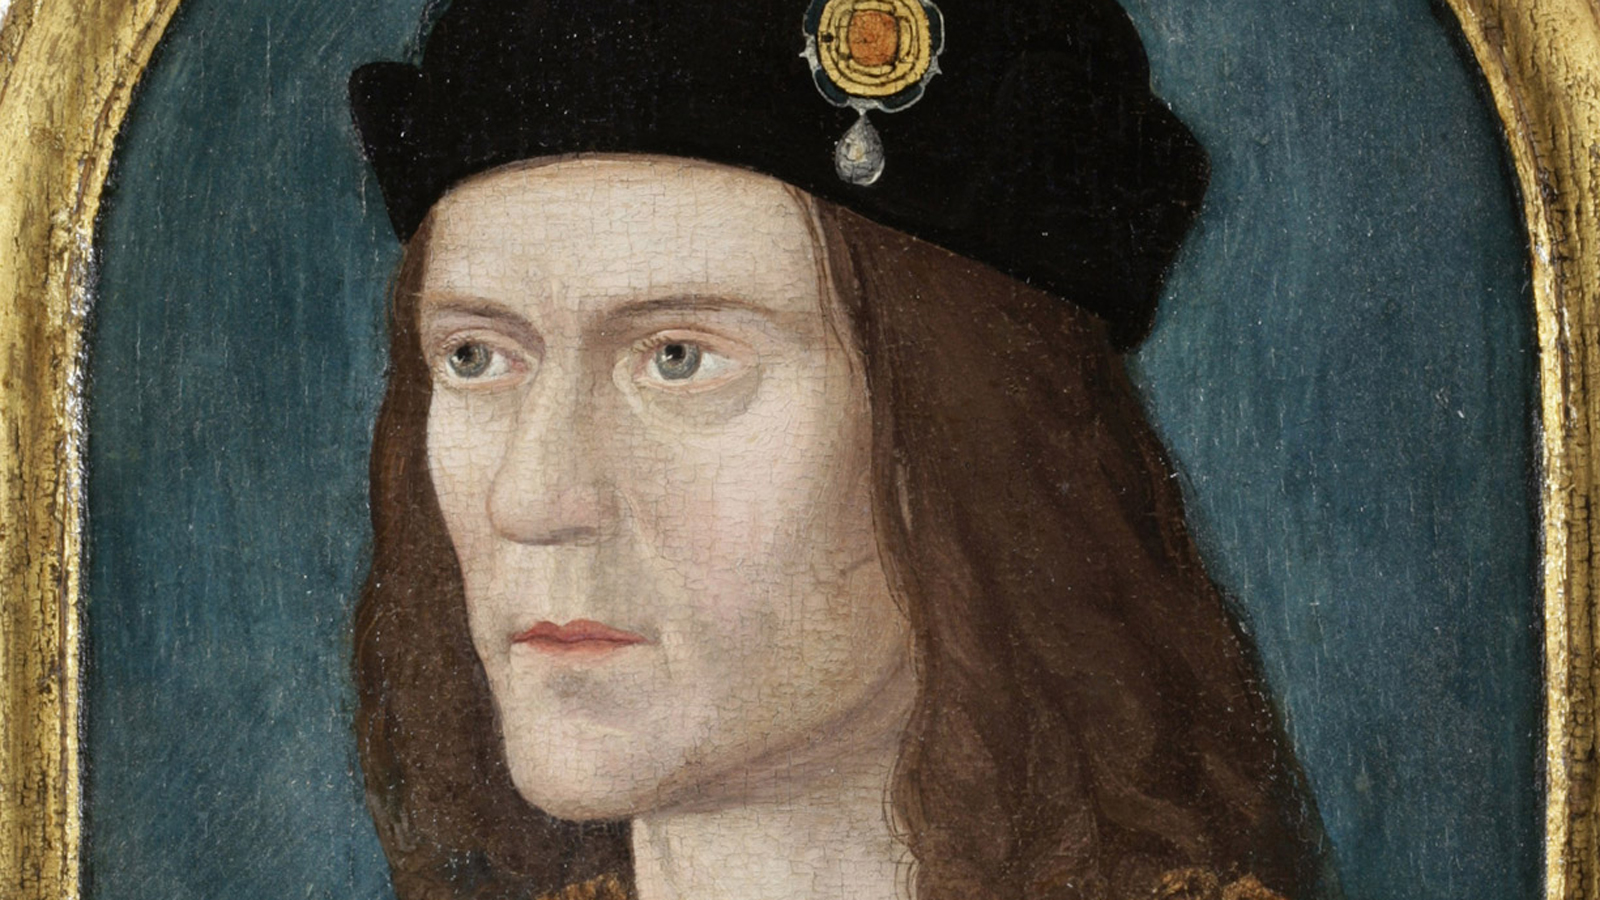 Richard III and Machiavelli